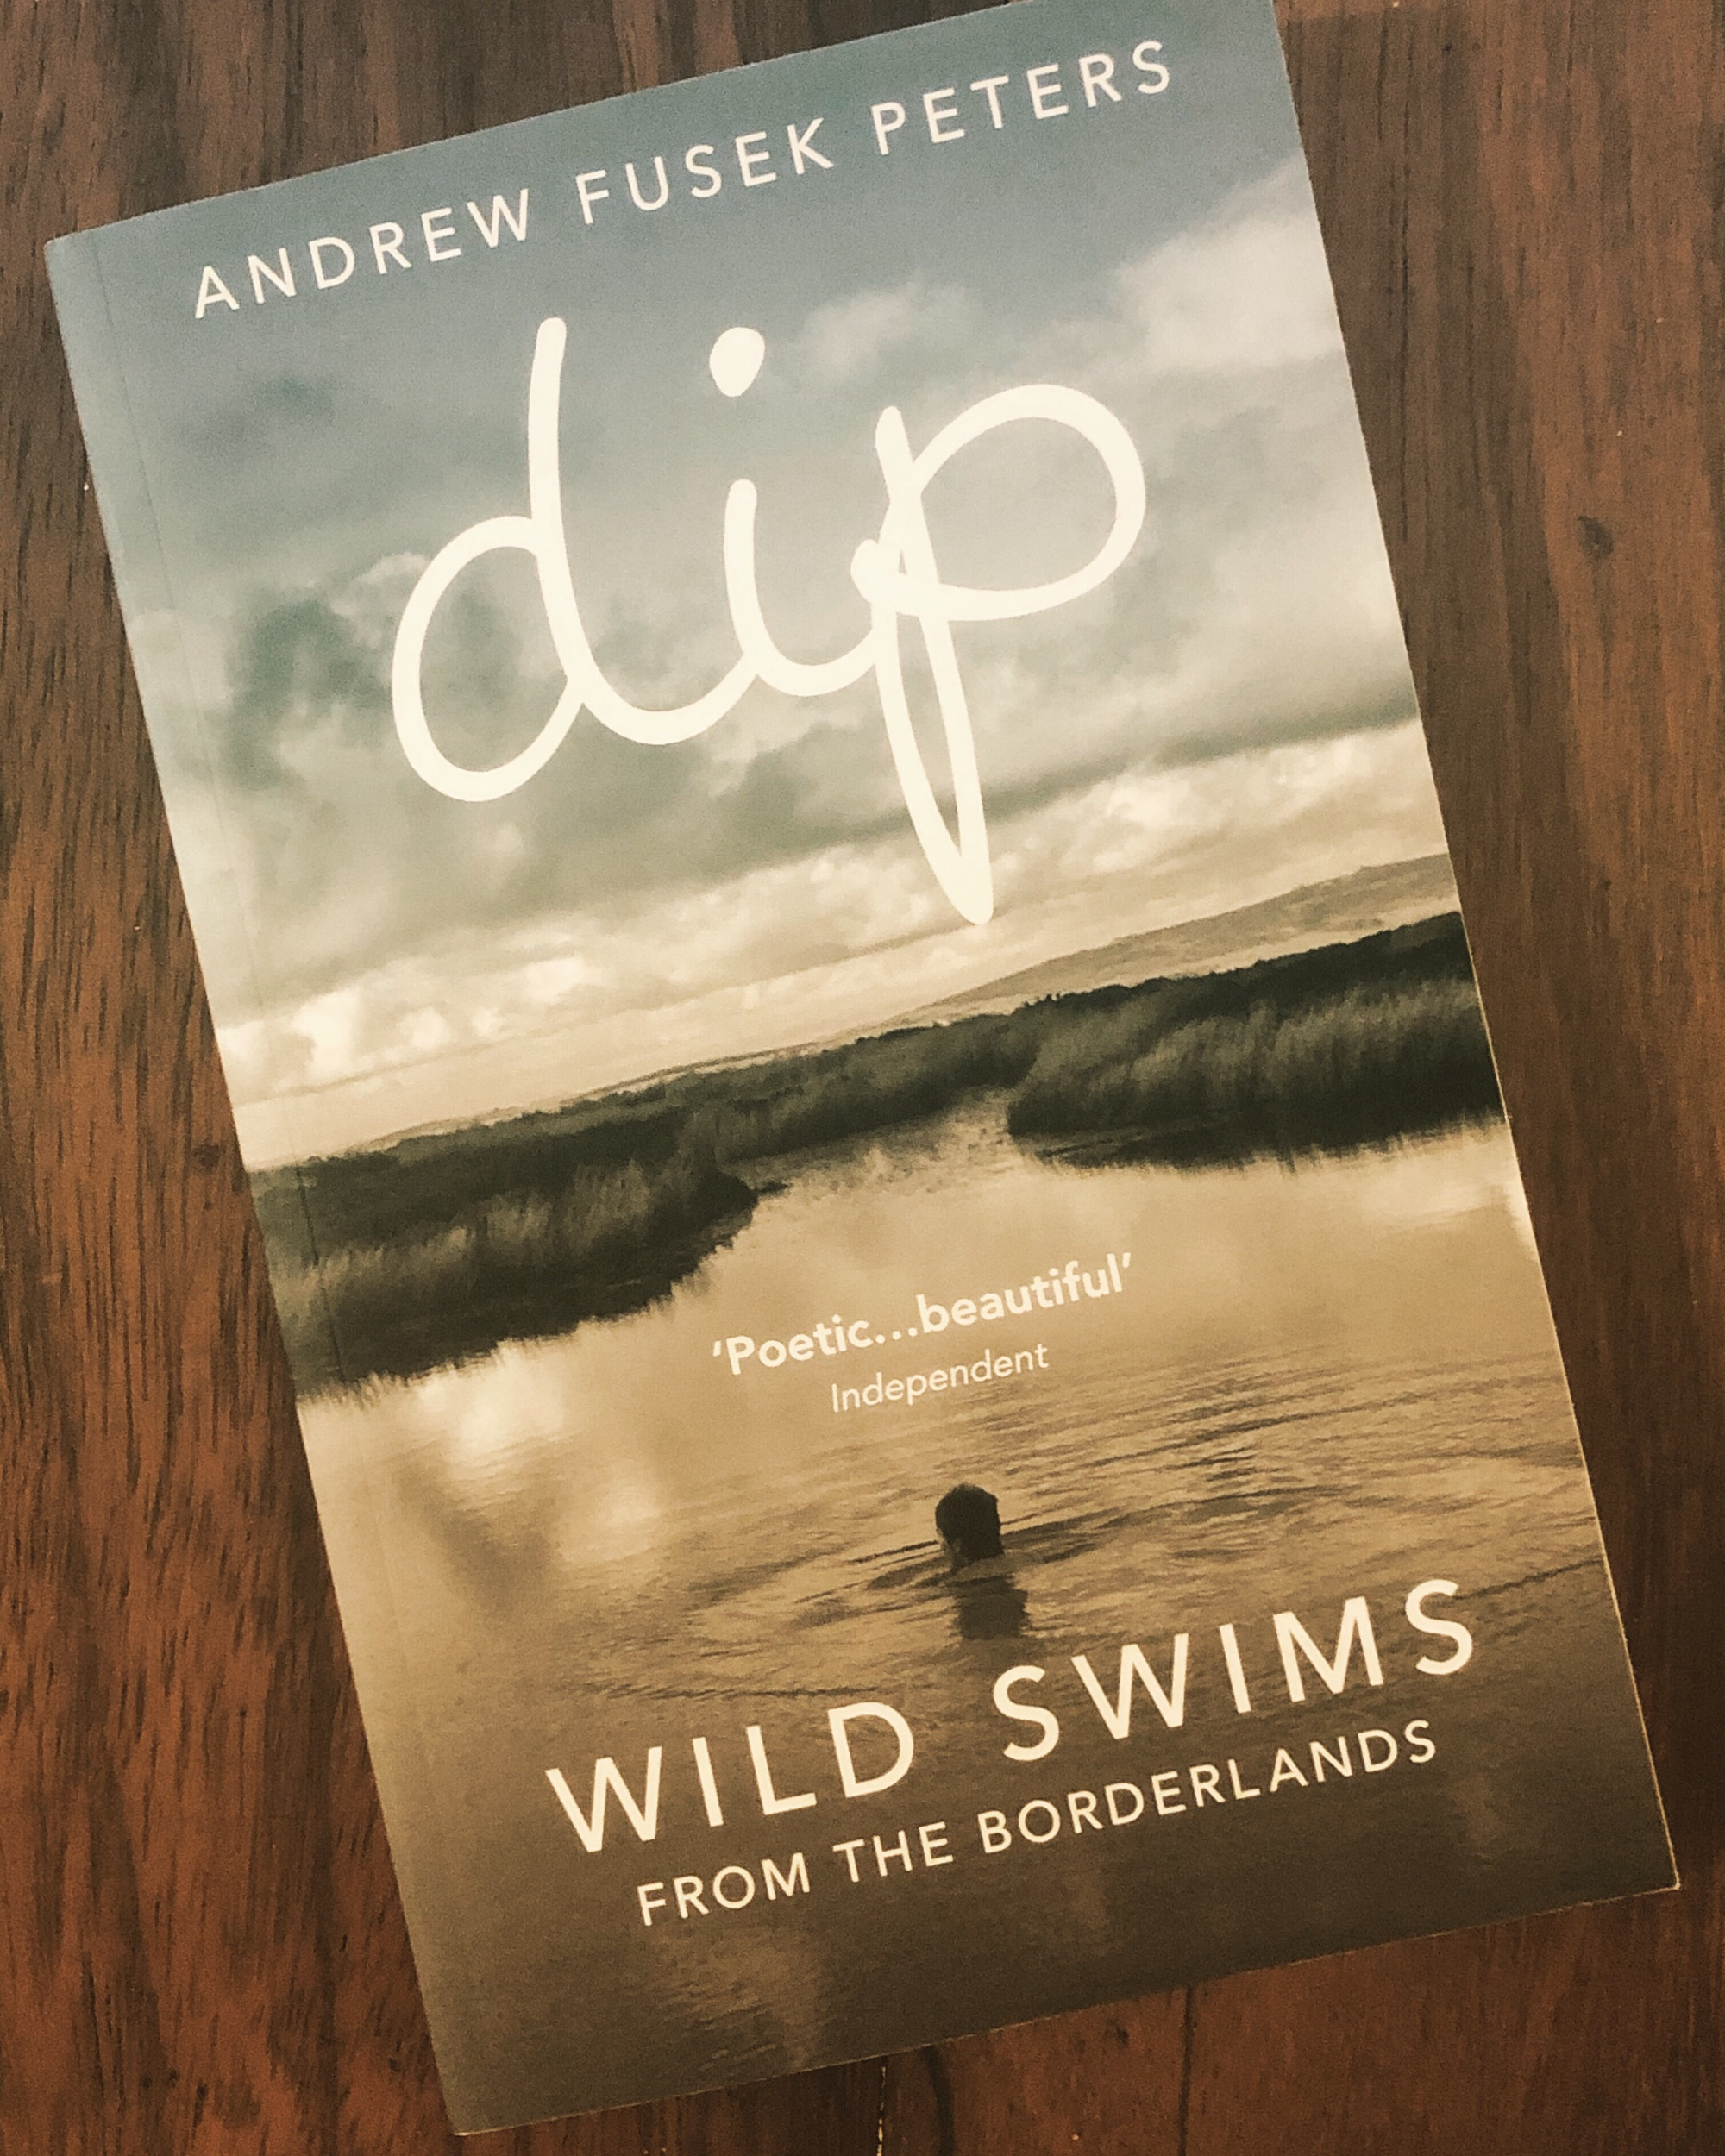 Andrew Fusek Peter' Dip: Wild swims from the Borderlands has been inspiring me to do more wild swimming